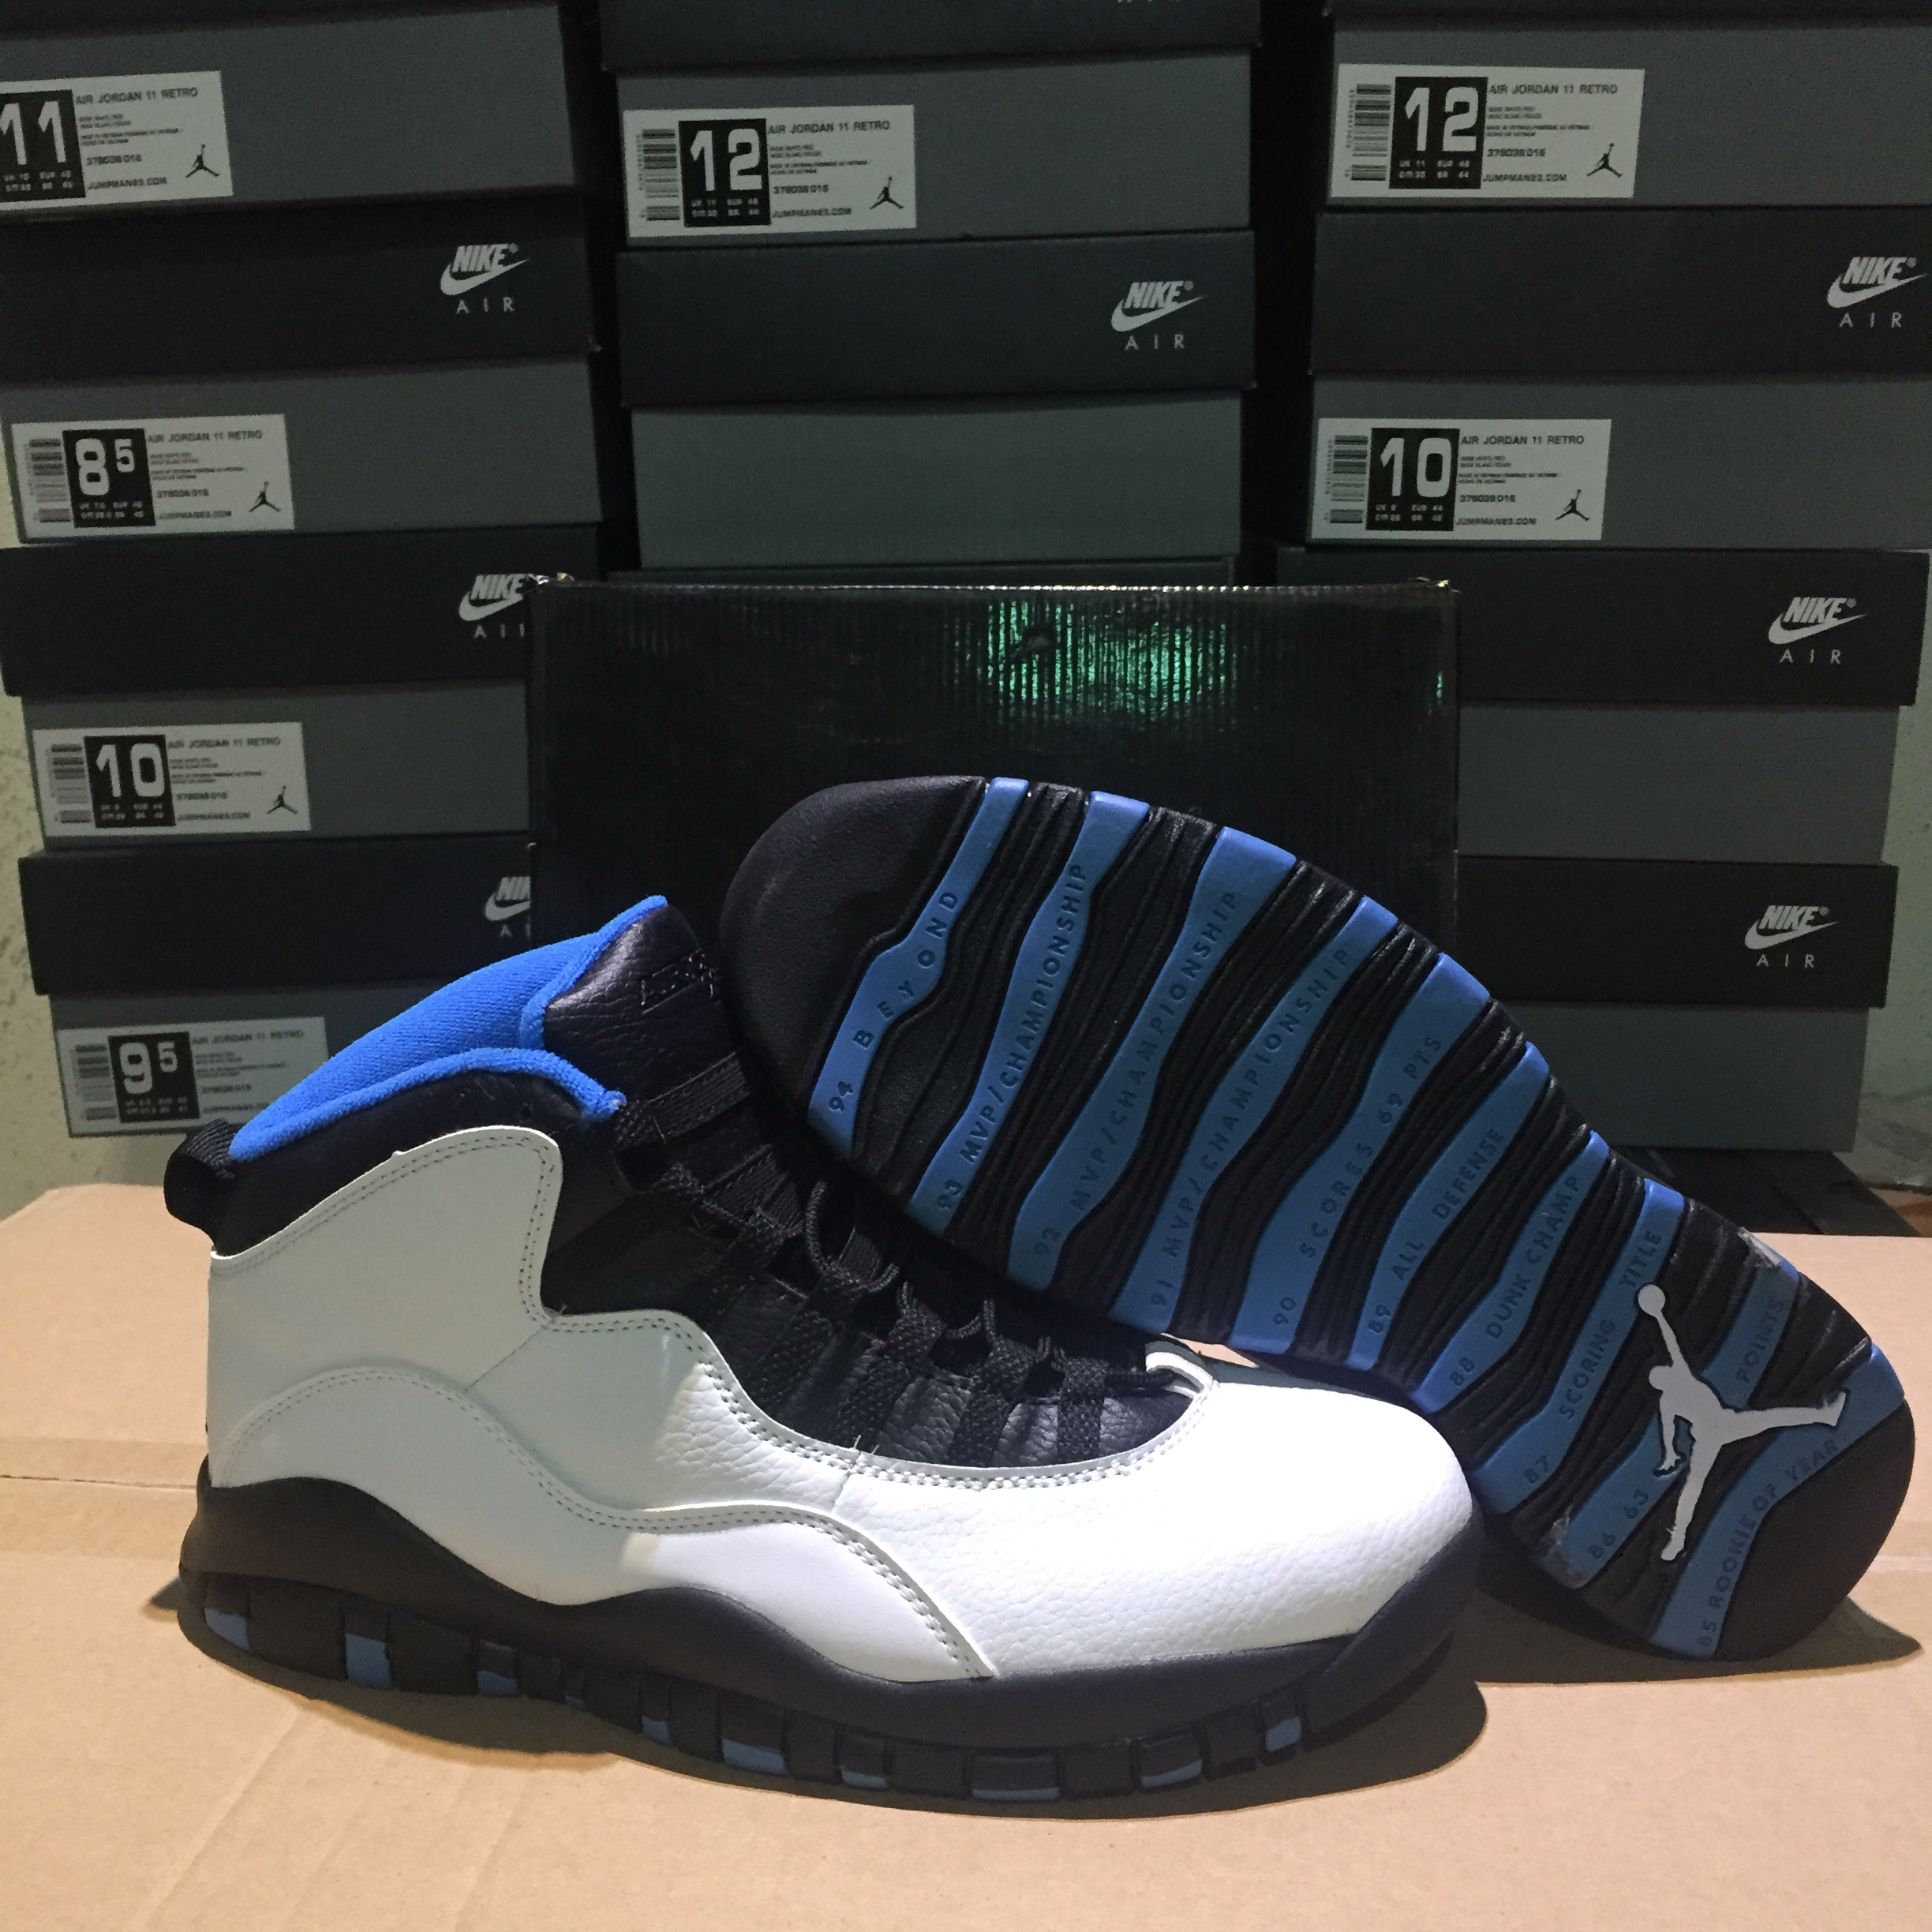 sale retailer bfae6 72cdf Air Jordan retro 10 White Black Blue 2018 Air Jordans Retro 10s Basketball  Shoes XY8 - Getfashionsstore.